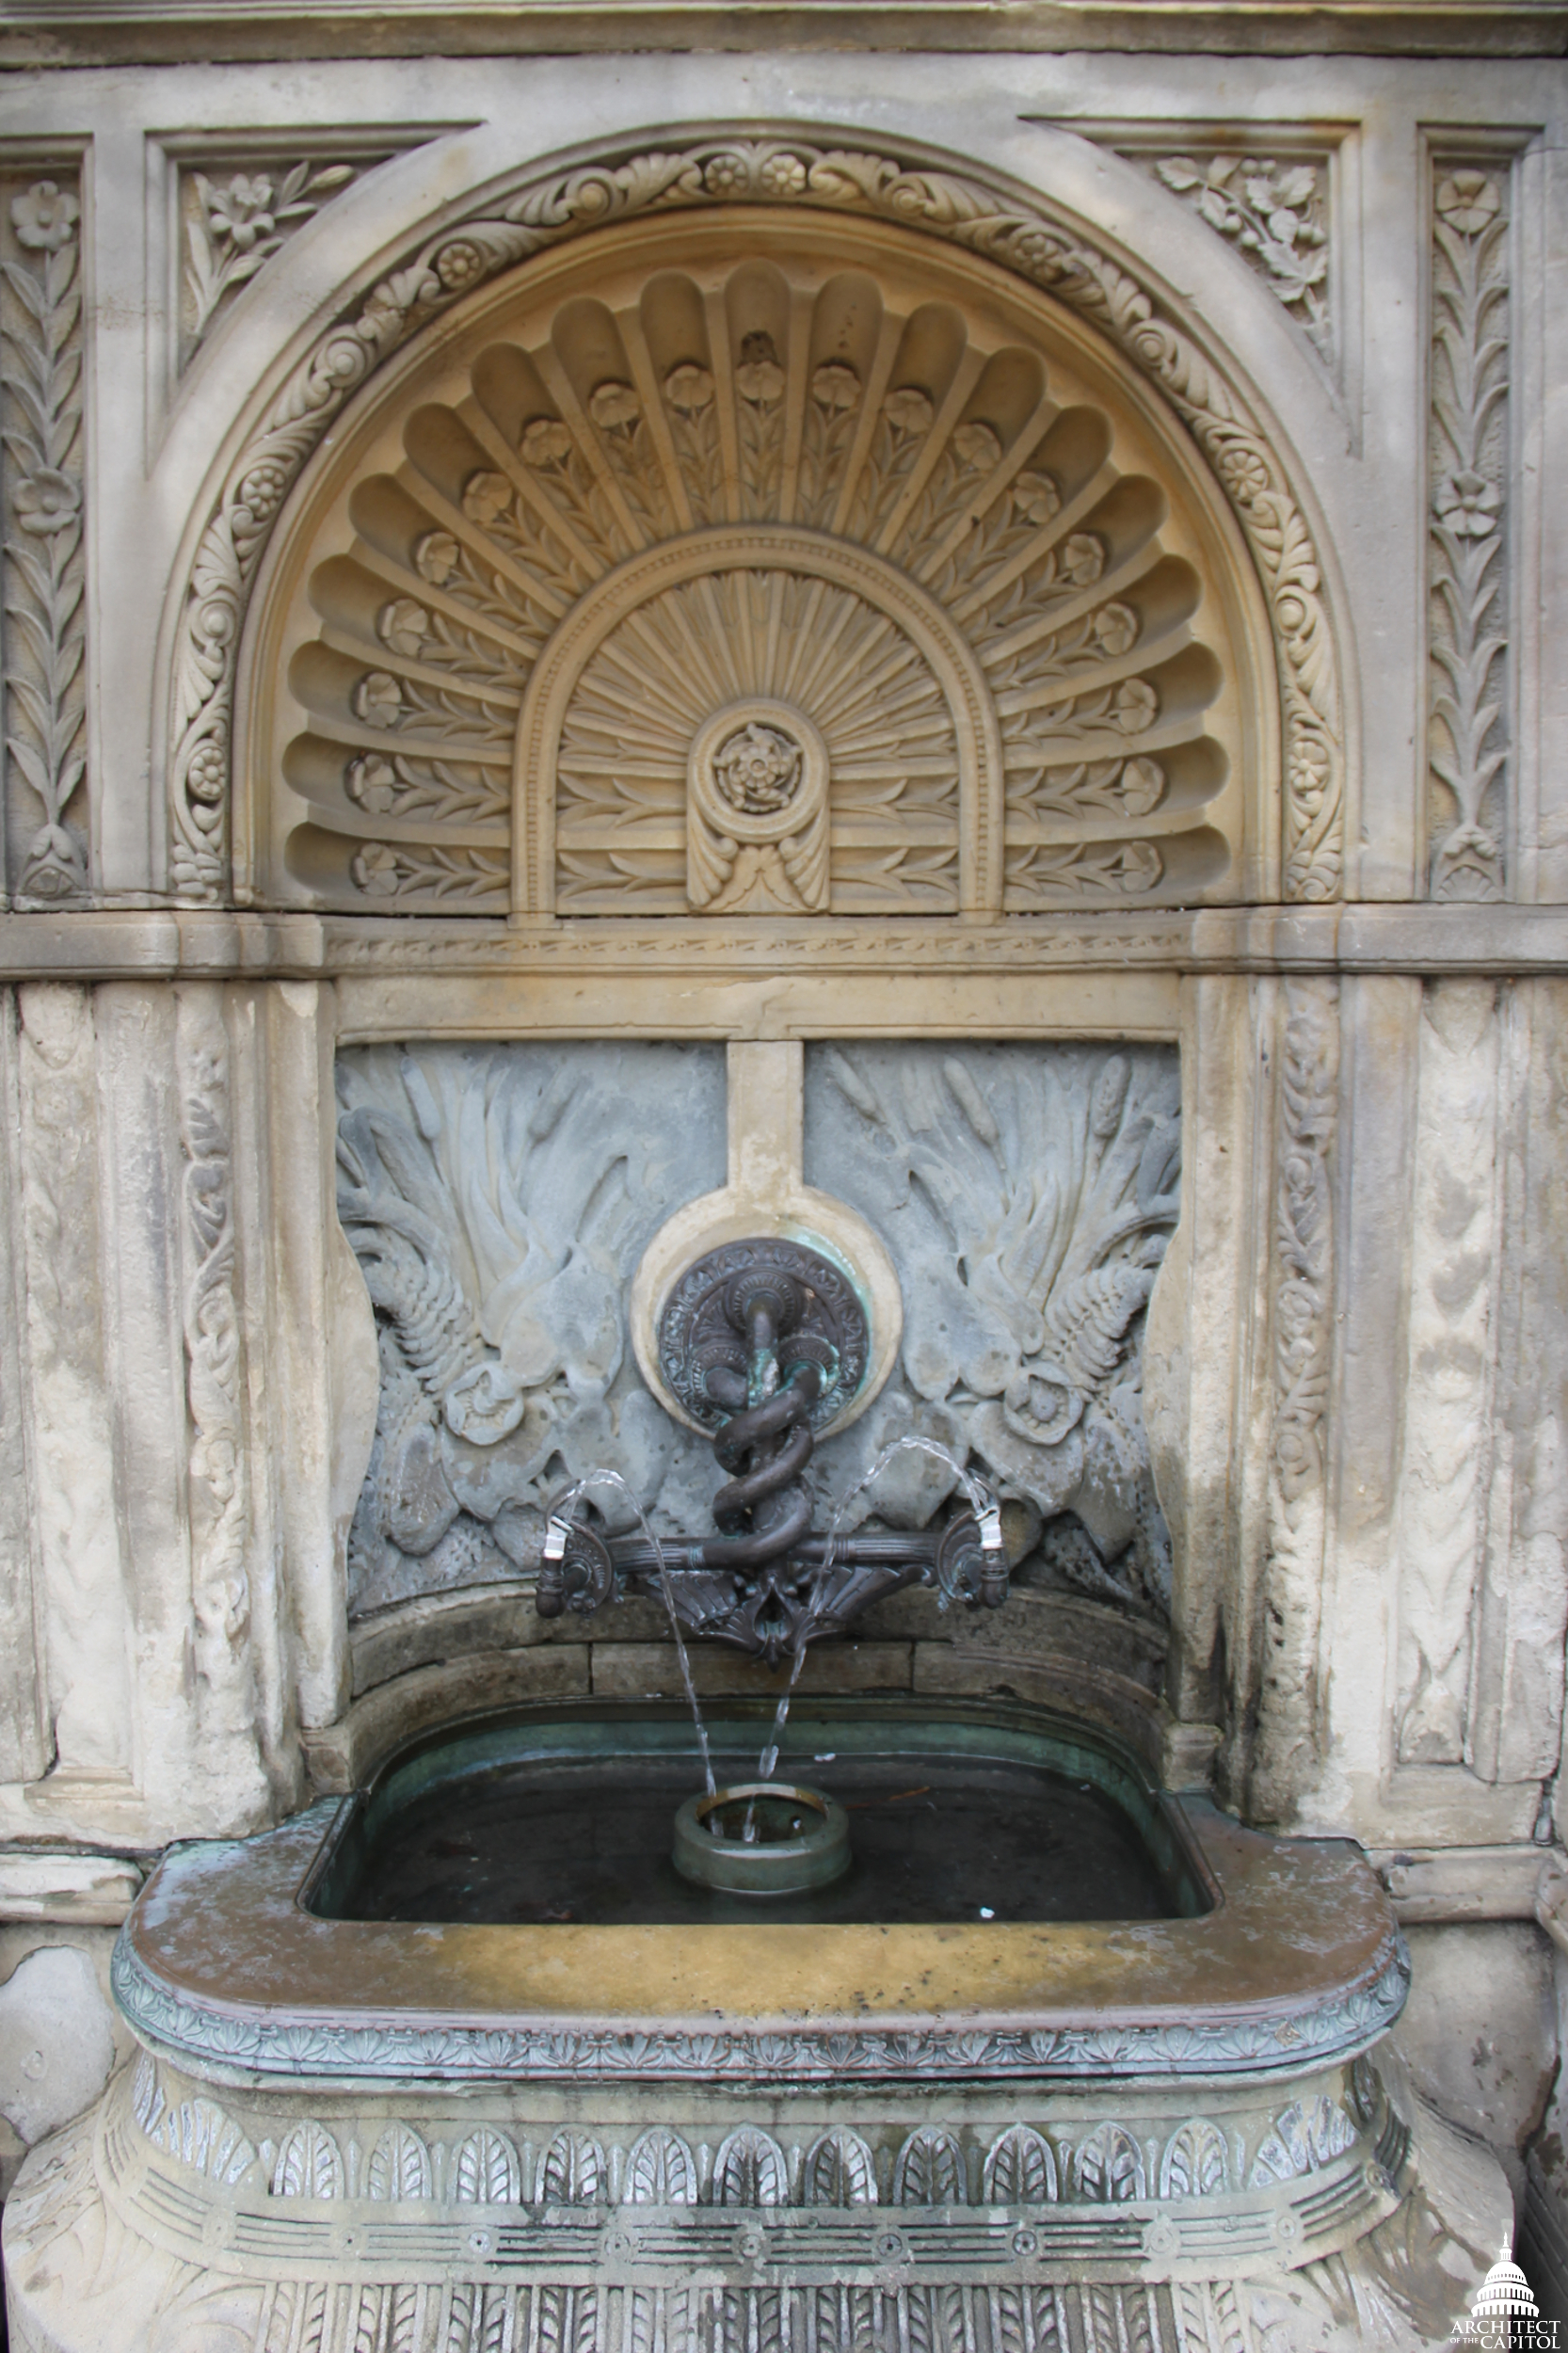 The Olmsted terrace drinking fountain.